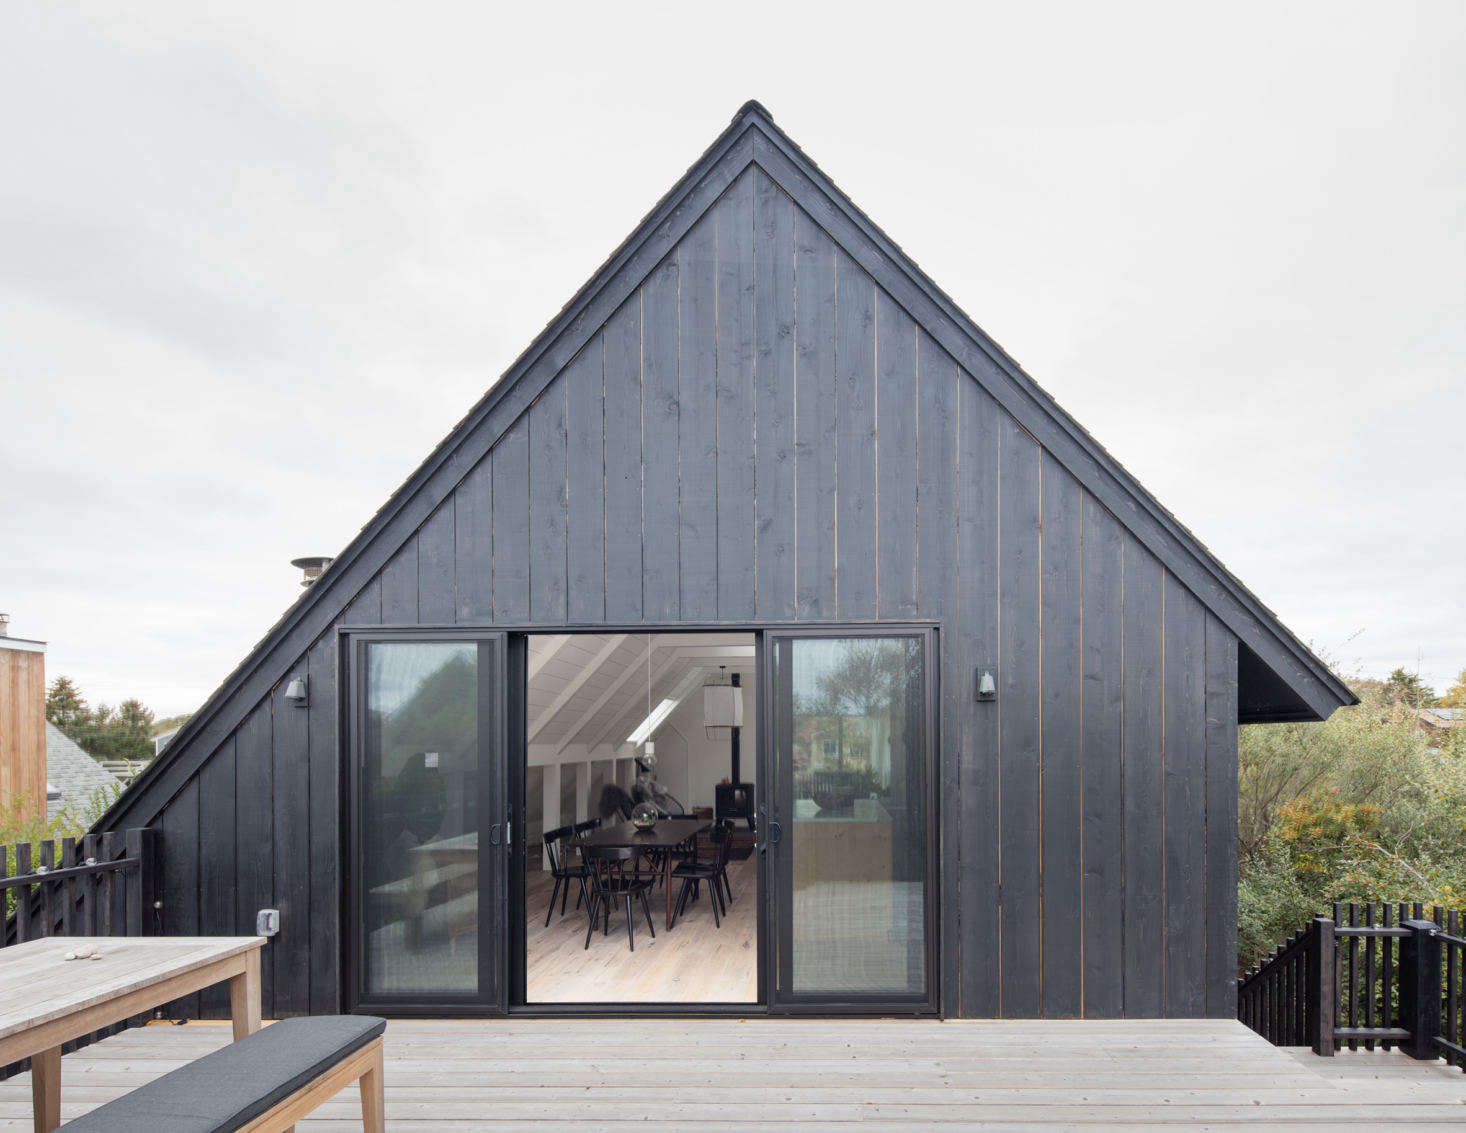 From the outset, the owners wanted the upper floor of the house to be an open-plan kitchen, living, and dining room with a link to the outdoors. It opens directly onto a back deck, which almost doubles that floor&#8